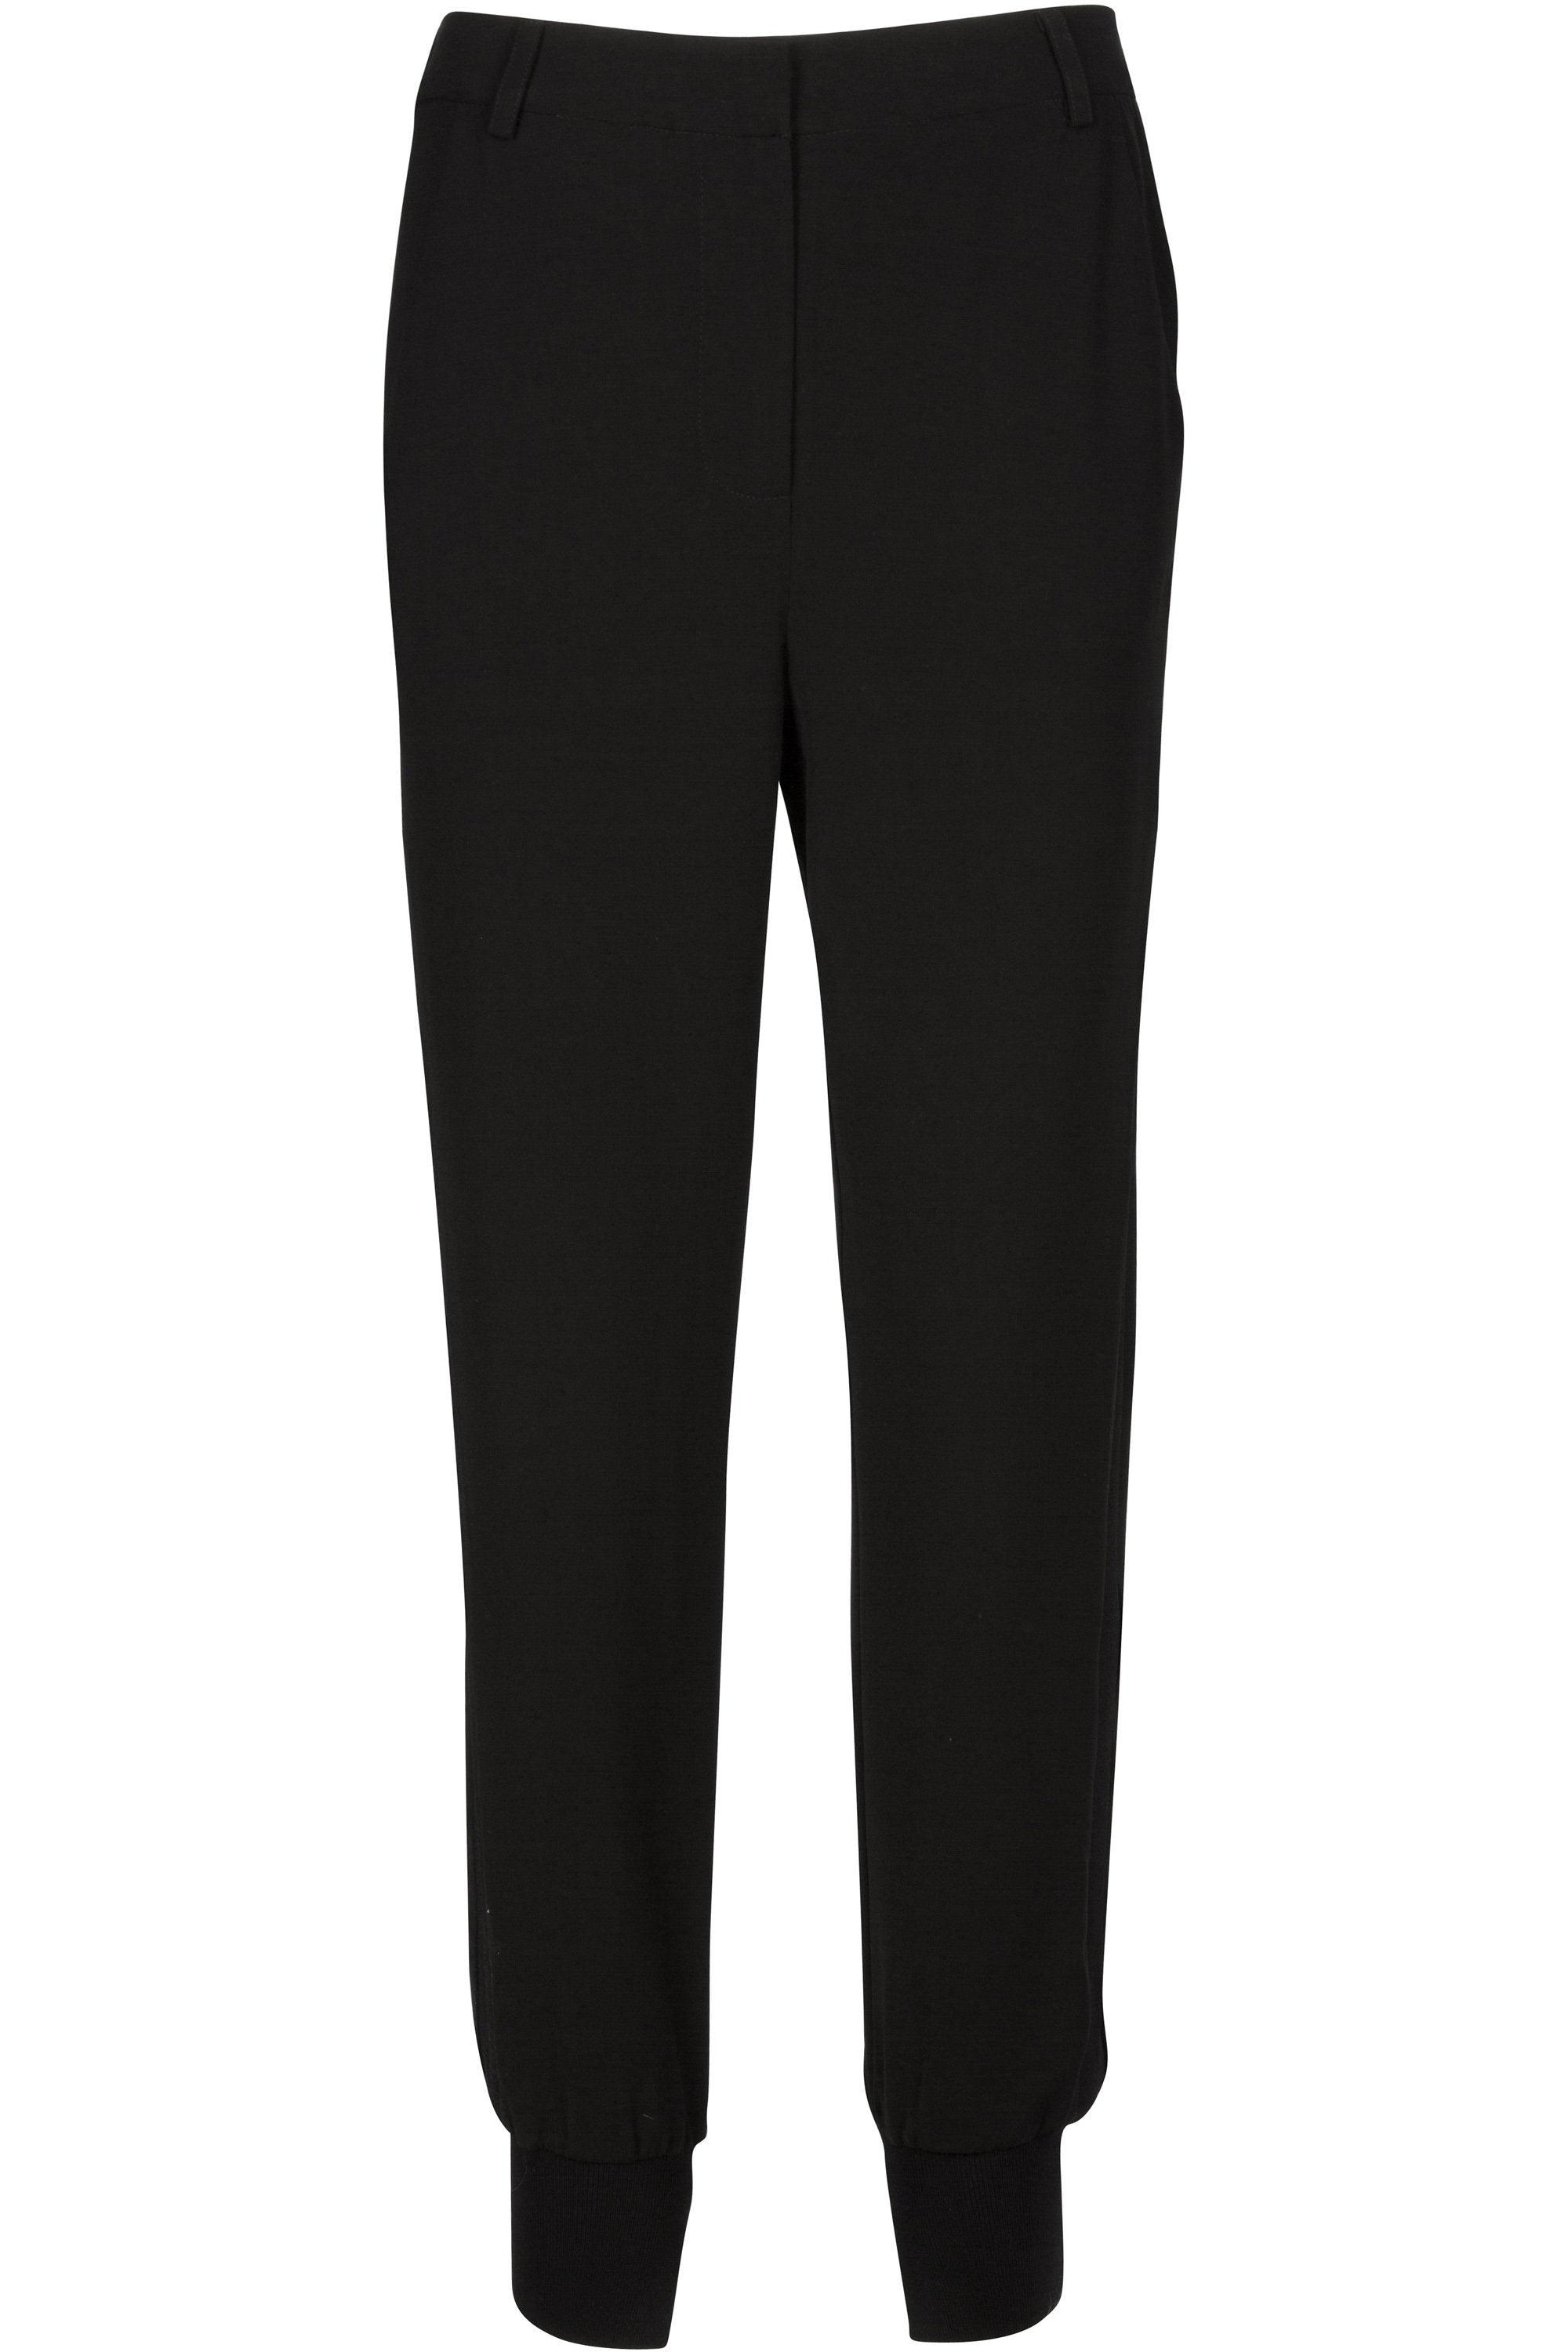 HIGH RISE JOGGER PANT PANTS by KENDALL + KYLIE